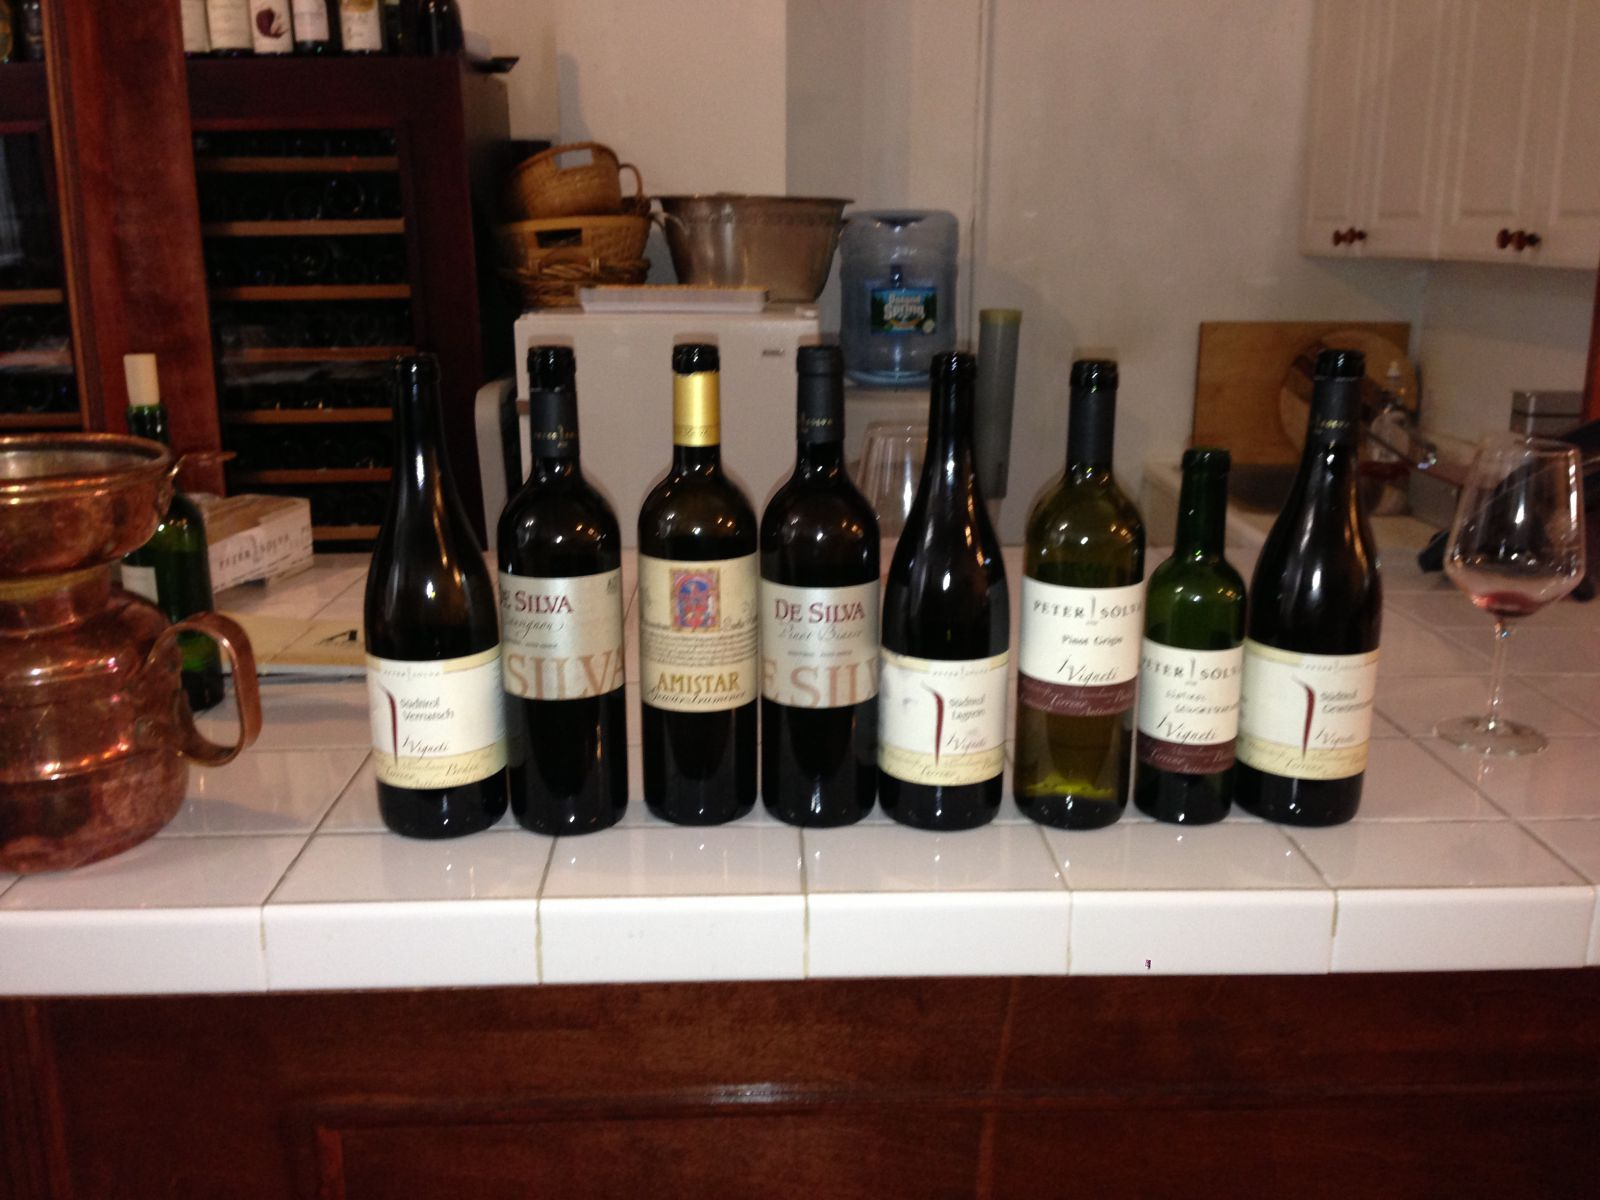 All the wines tasted